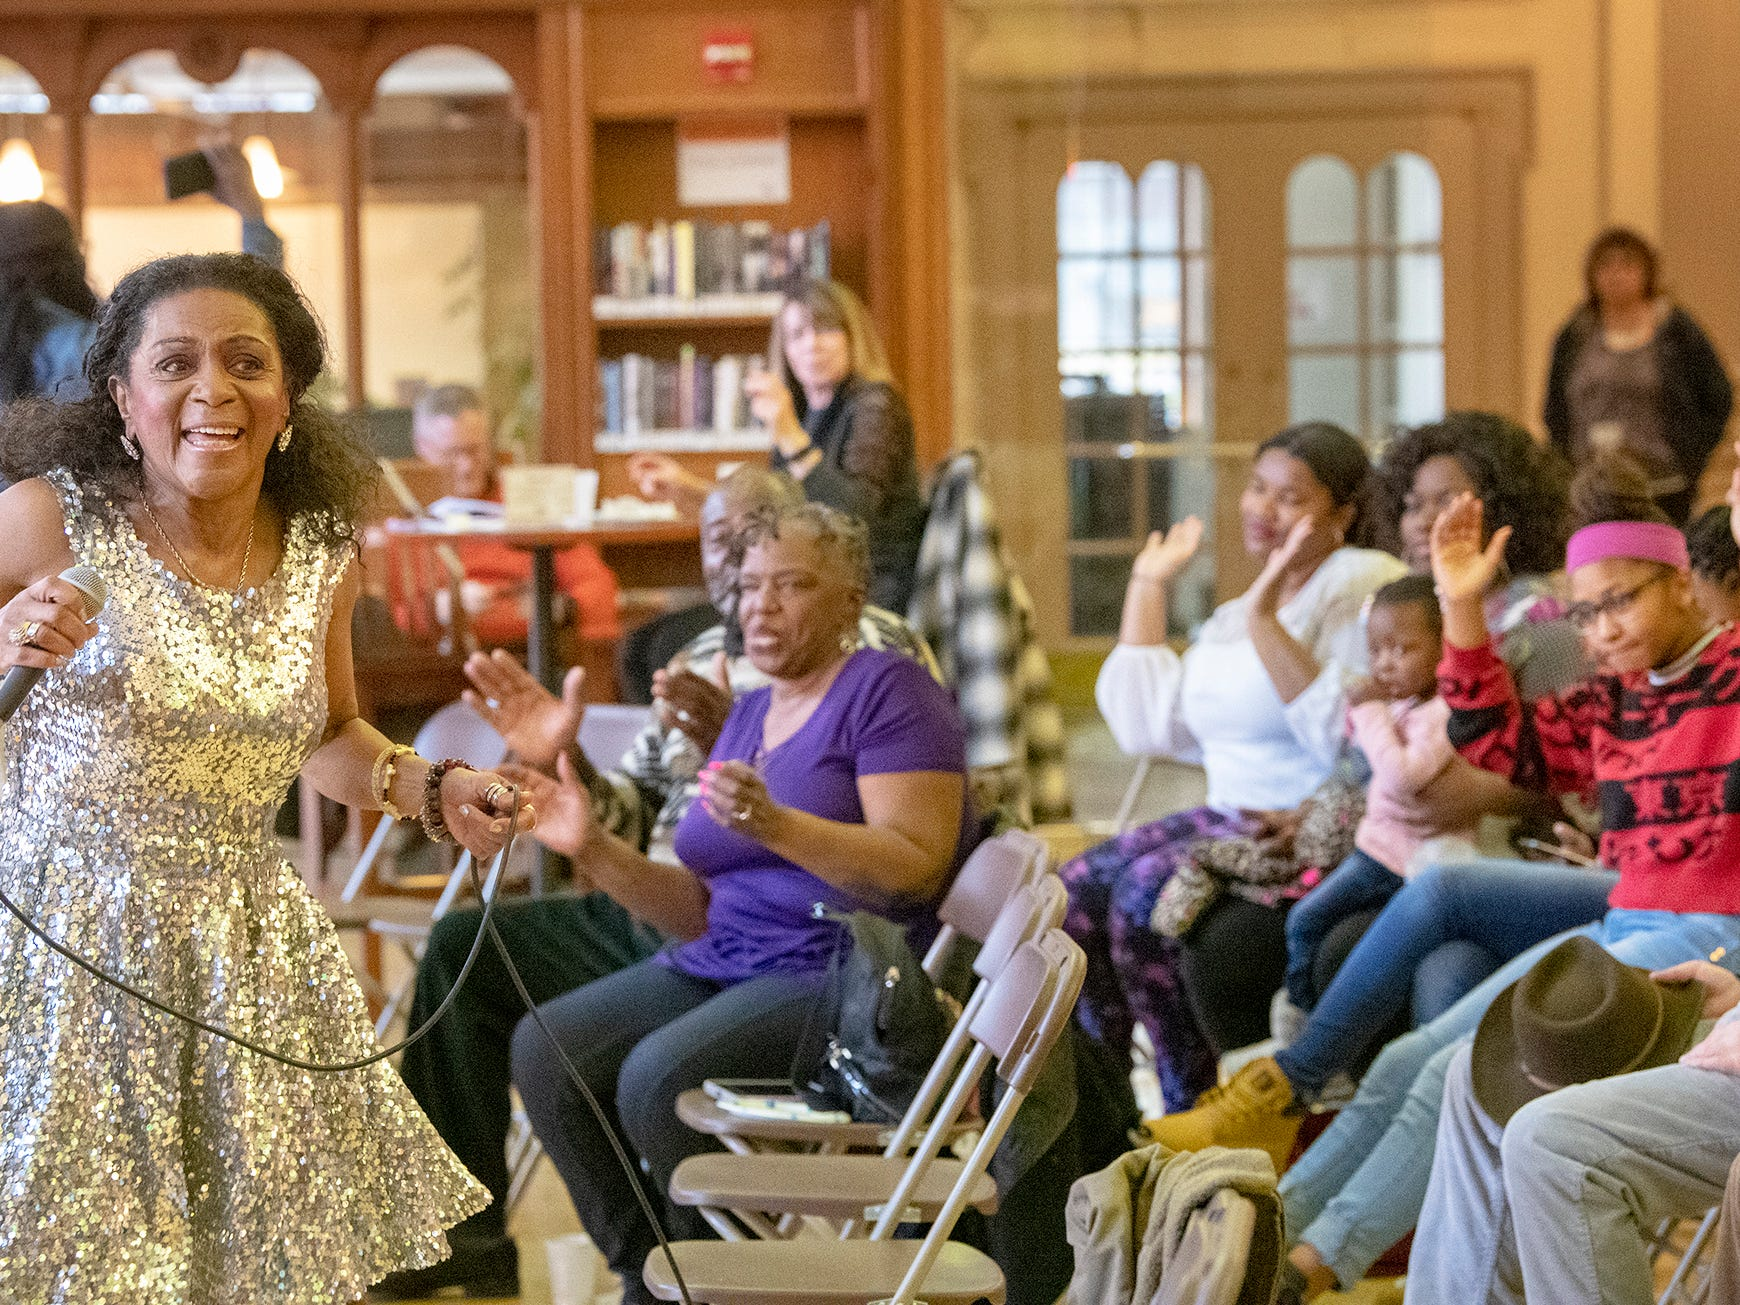 Vanda Guzman performs during a free concert at Martin Library recently. She spent 24 years abroad, but lives in York now, saying the city reminds her of the time she spent in Germany.